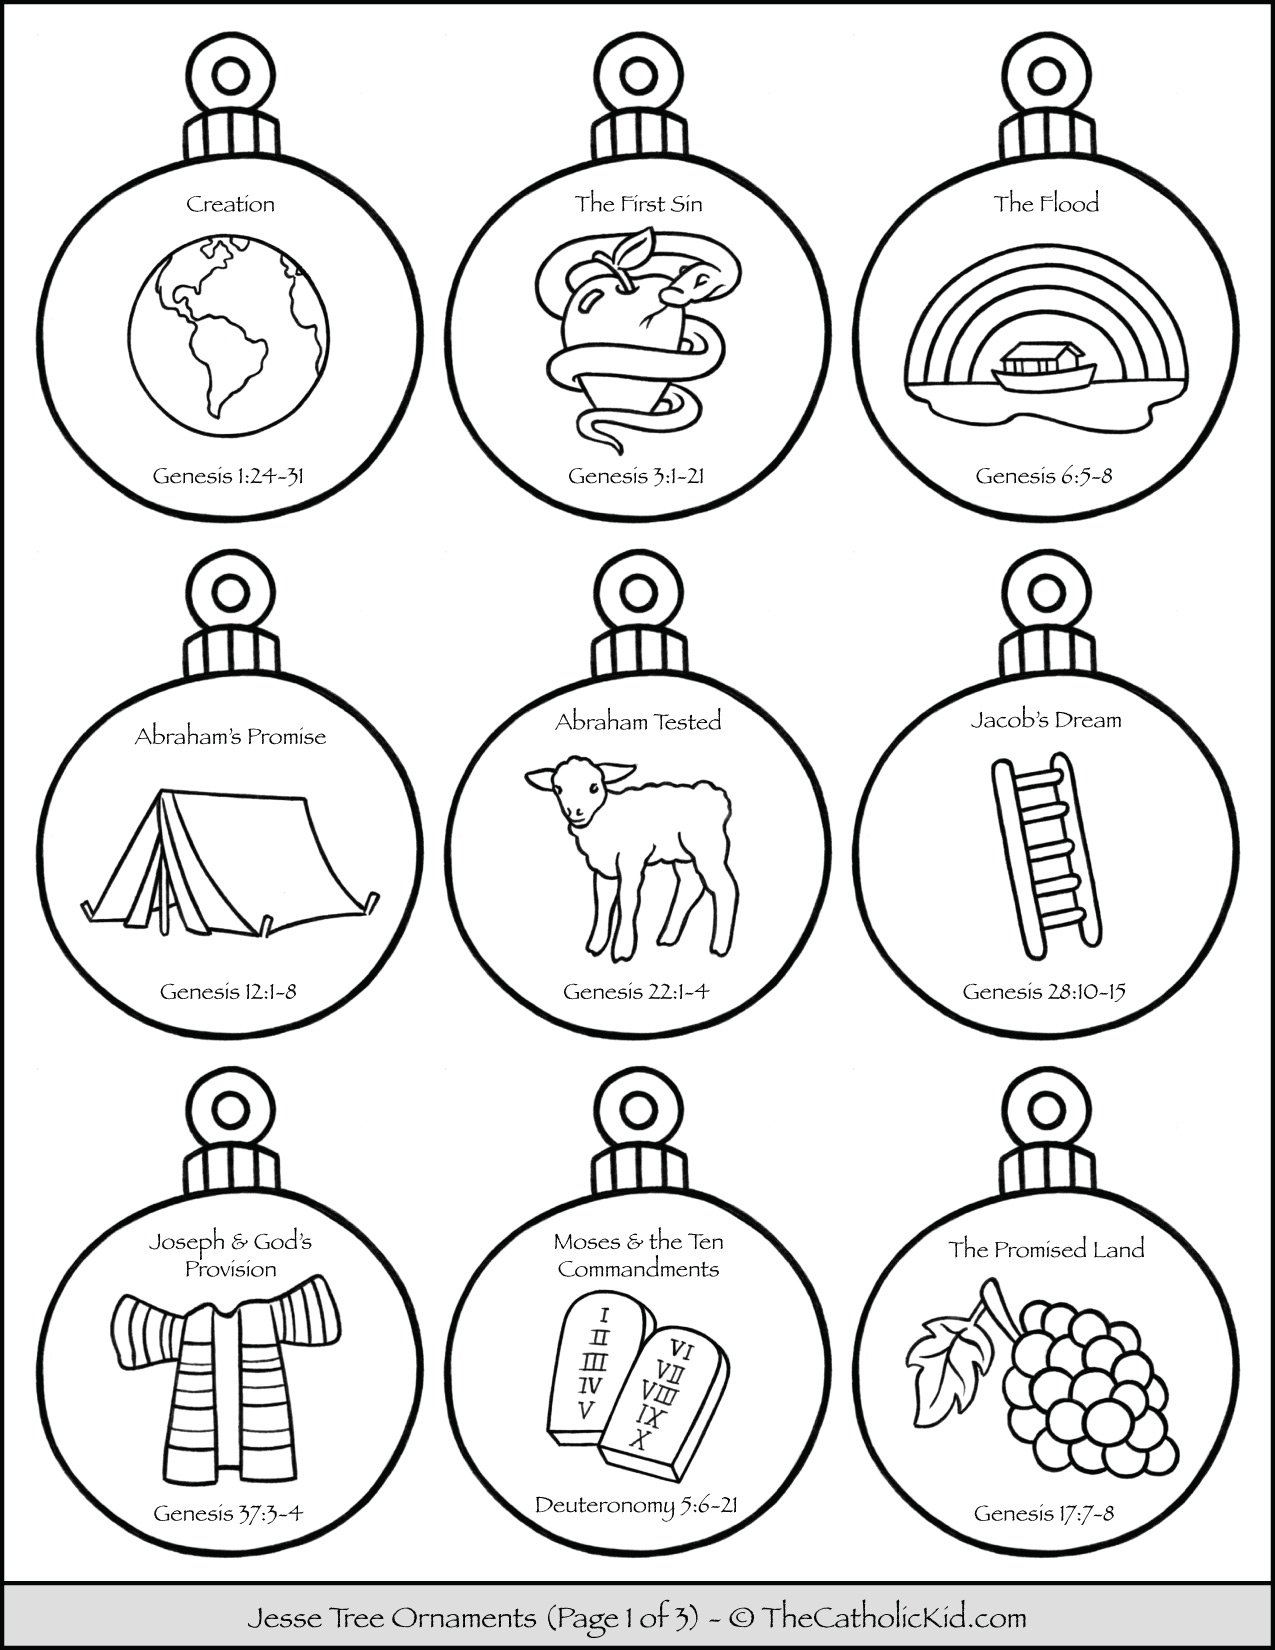 Jesse Tree Ornaments Printable Coloring Page 1